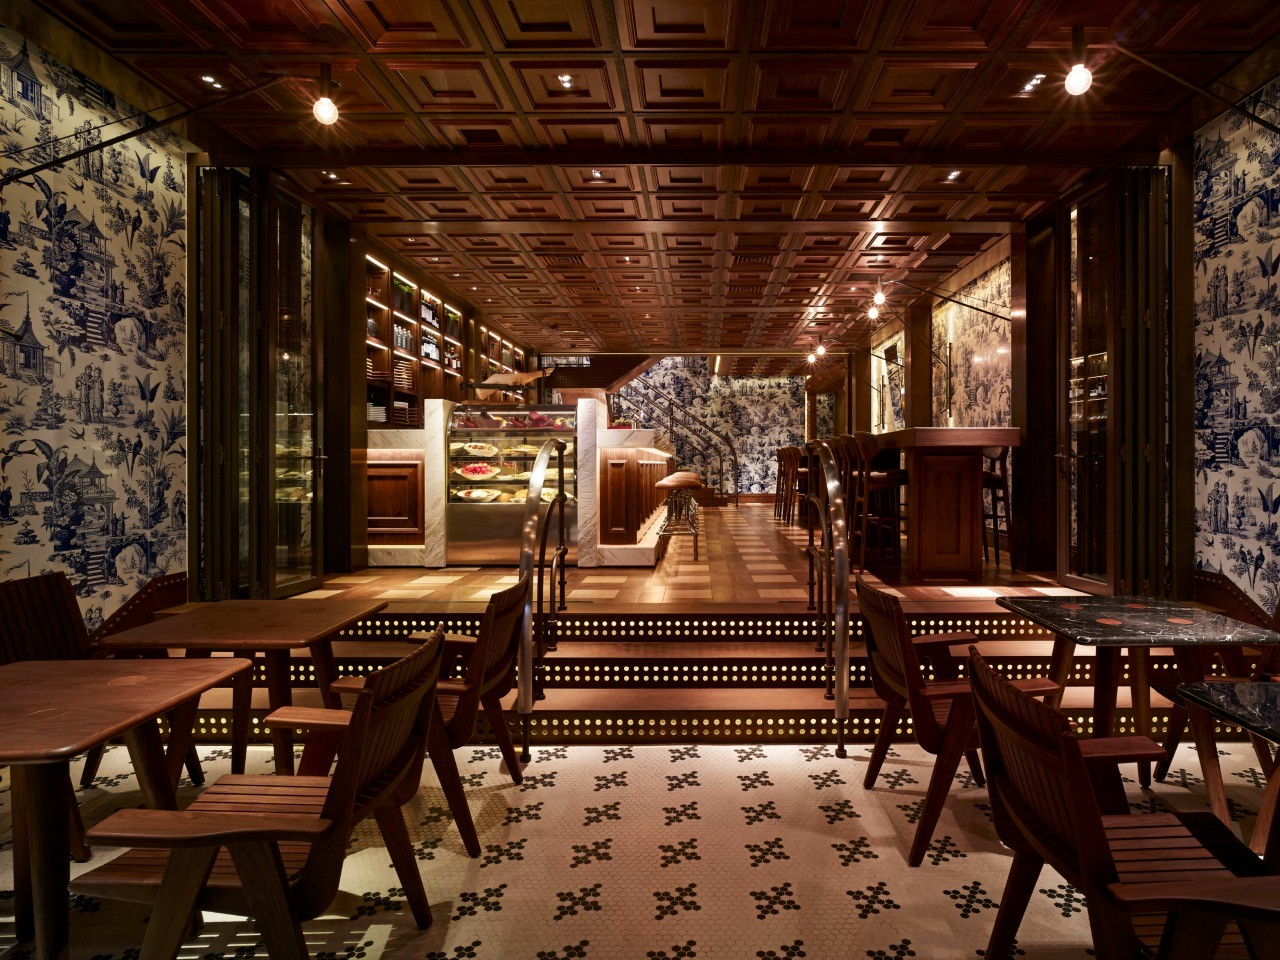 Interior of 208 duocento otto, Hollywood Road